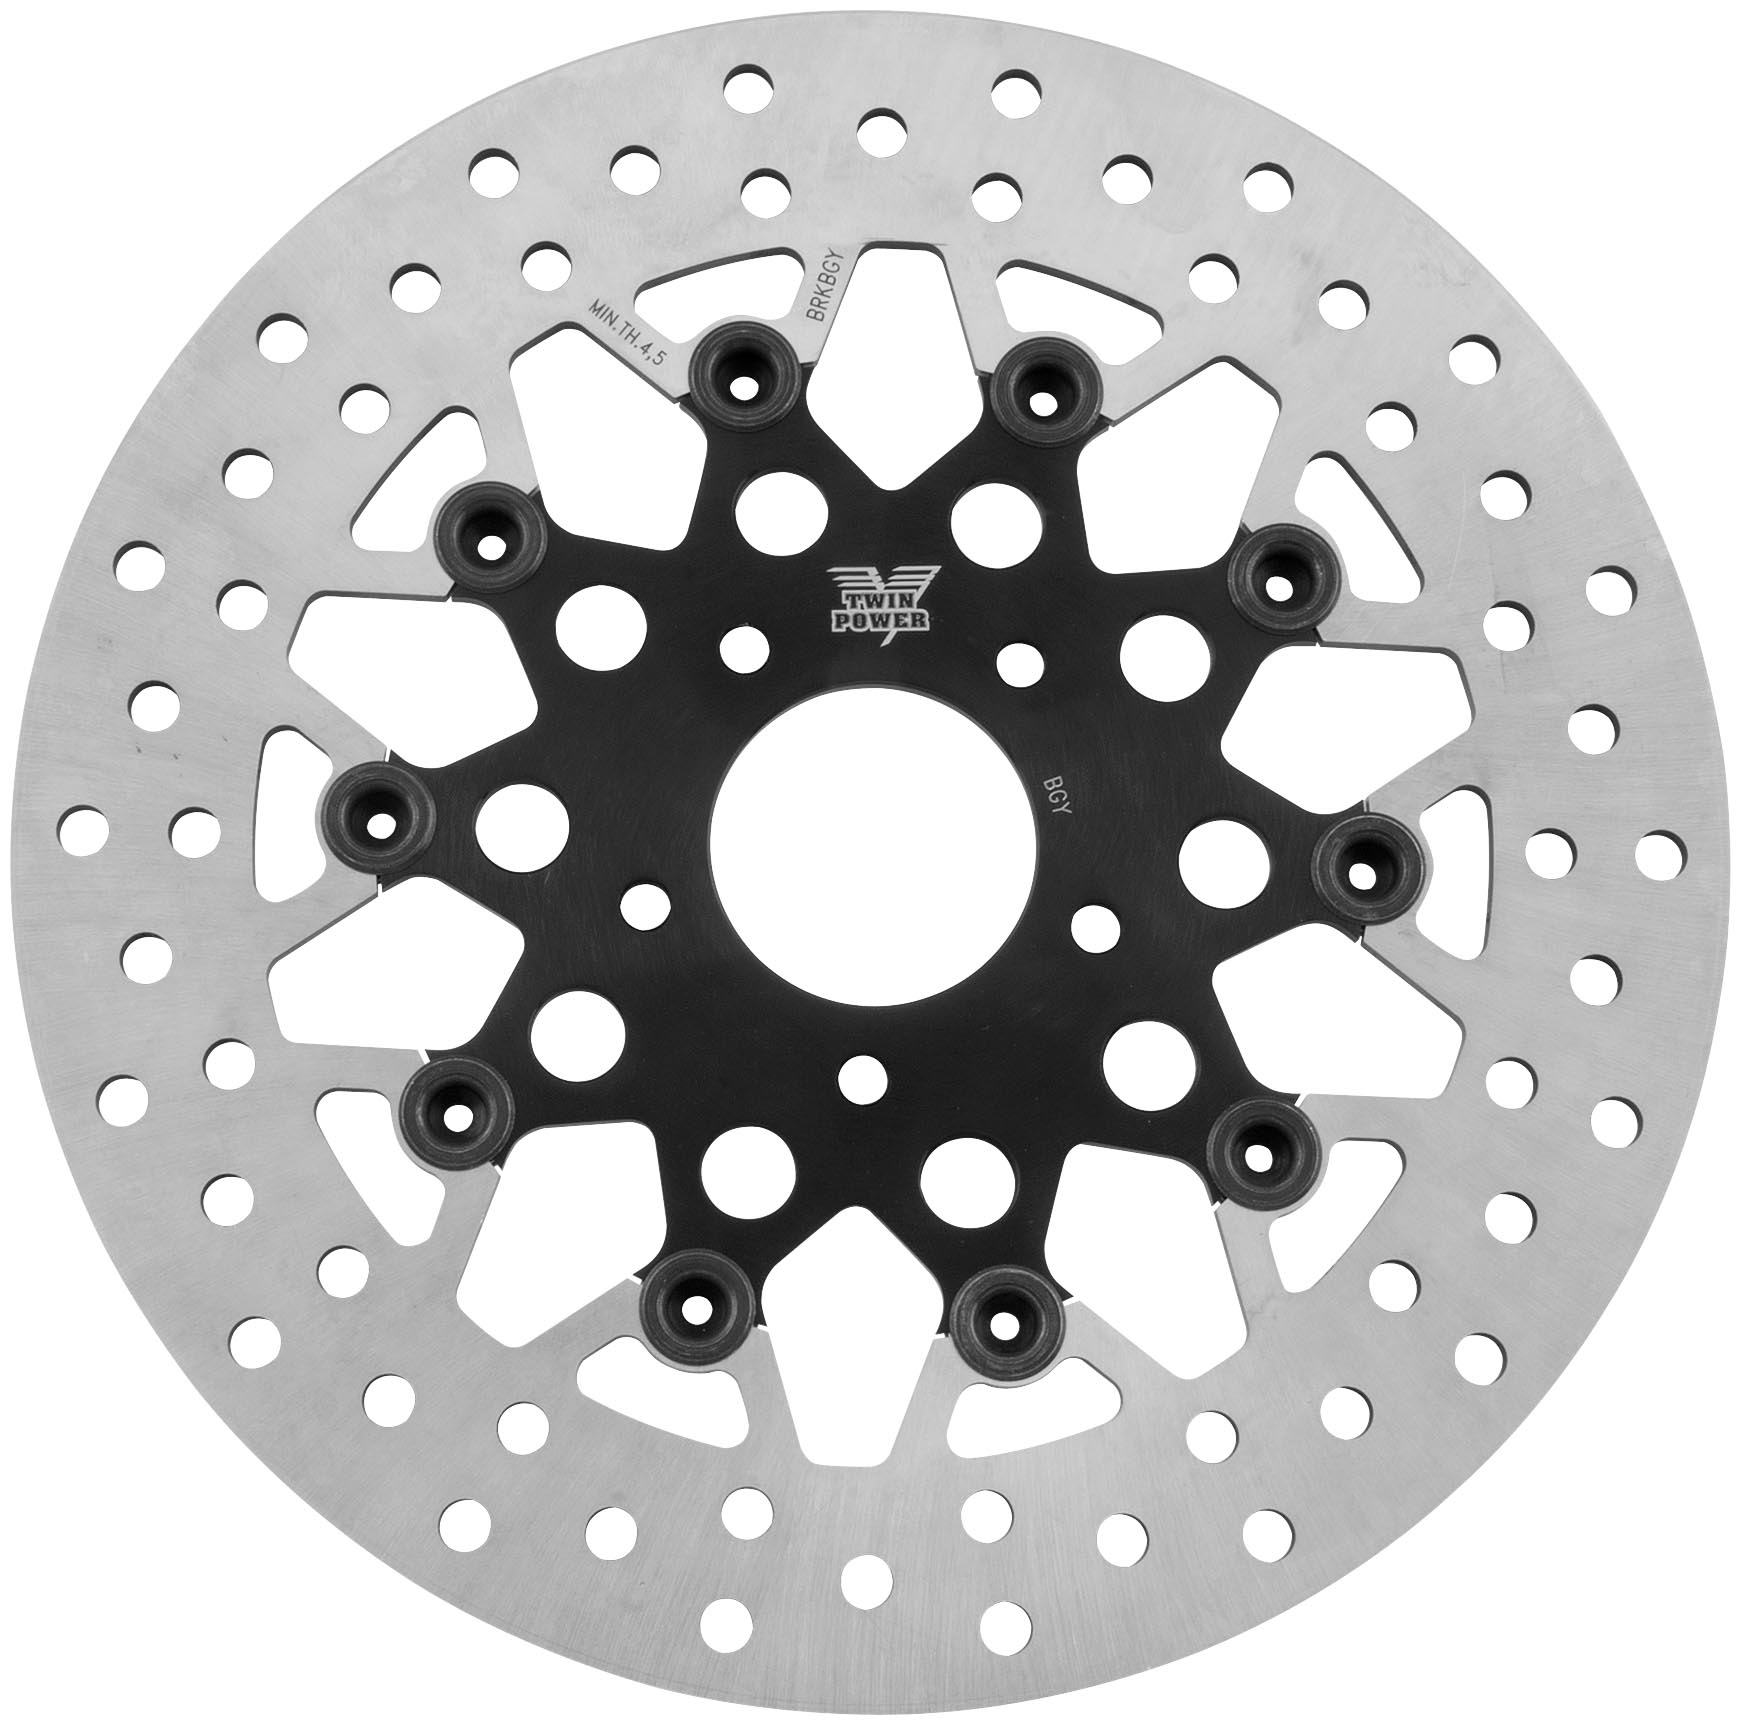 Twin Power 1441tb Floating Mesh Rotor